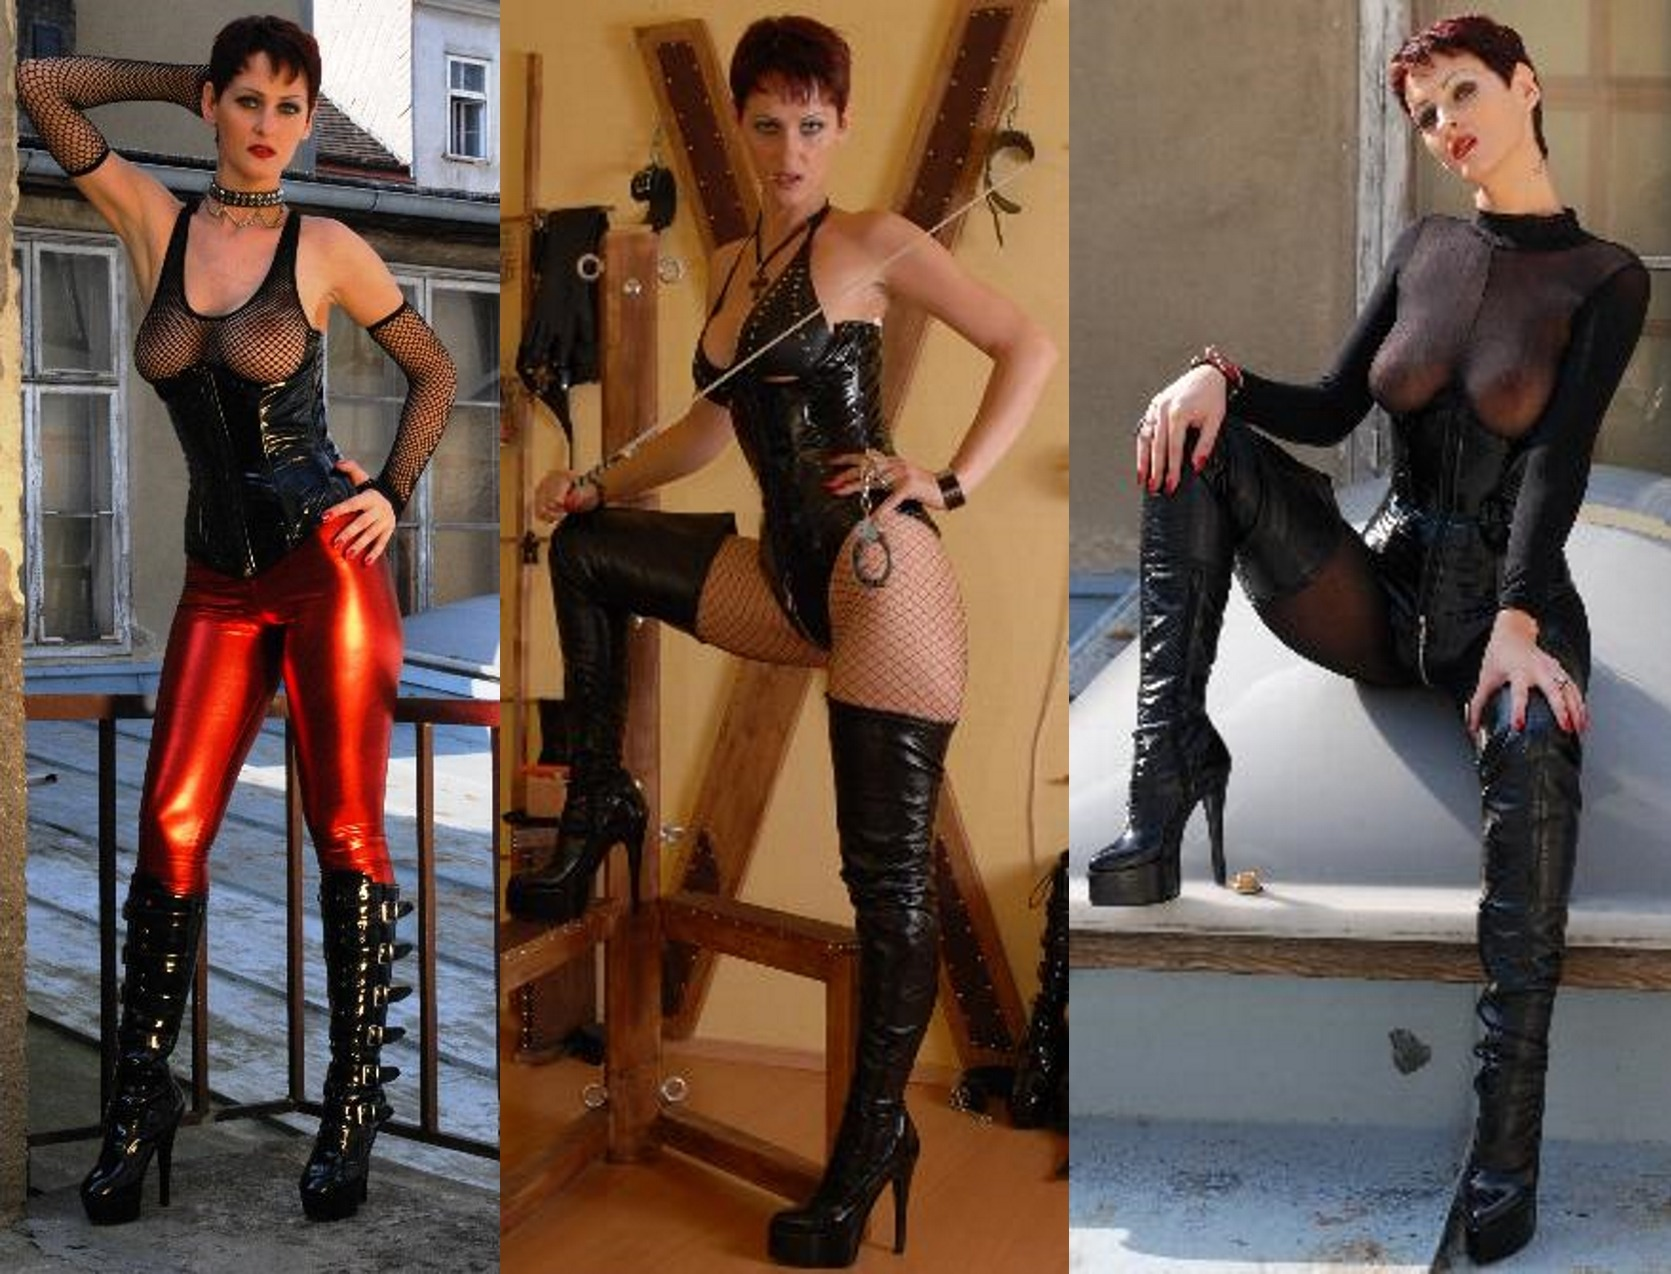 Nina Desire in domina clothes in Vienna